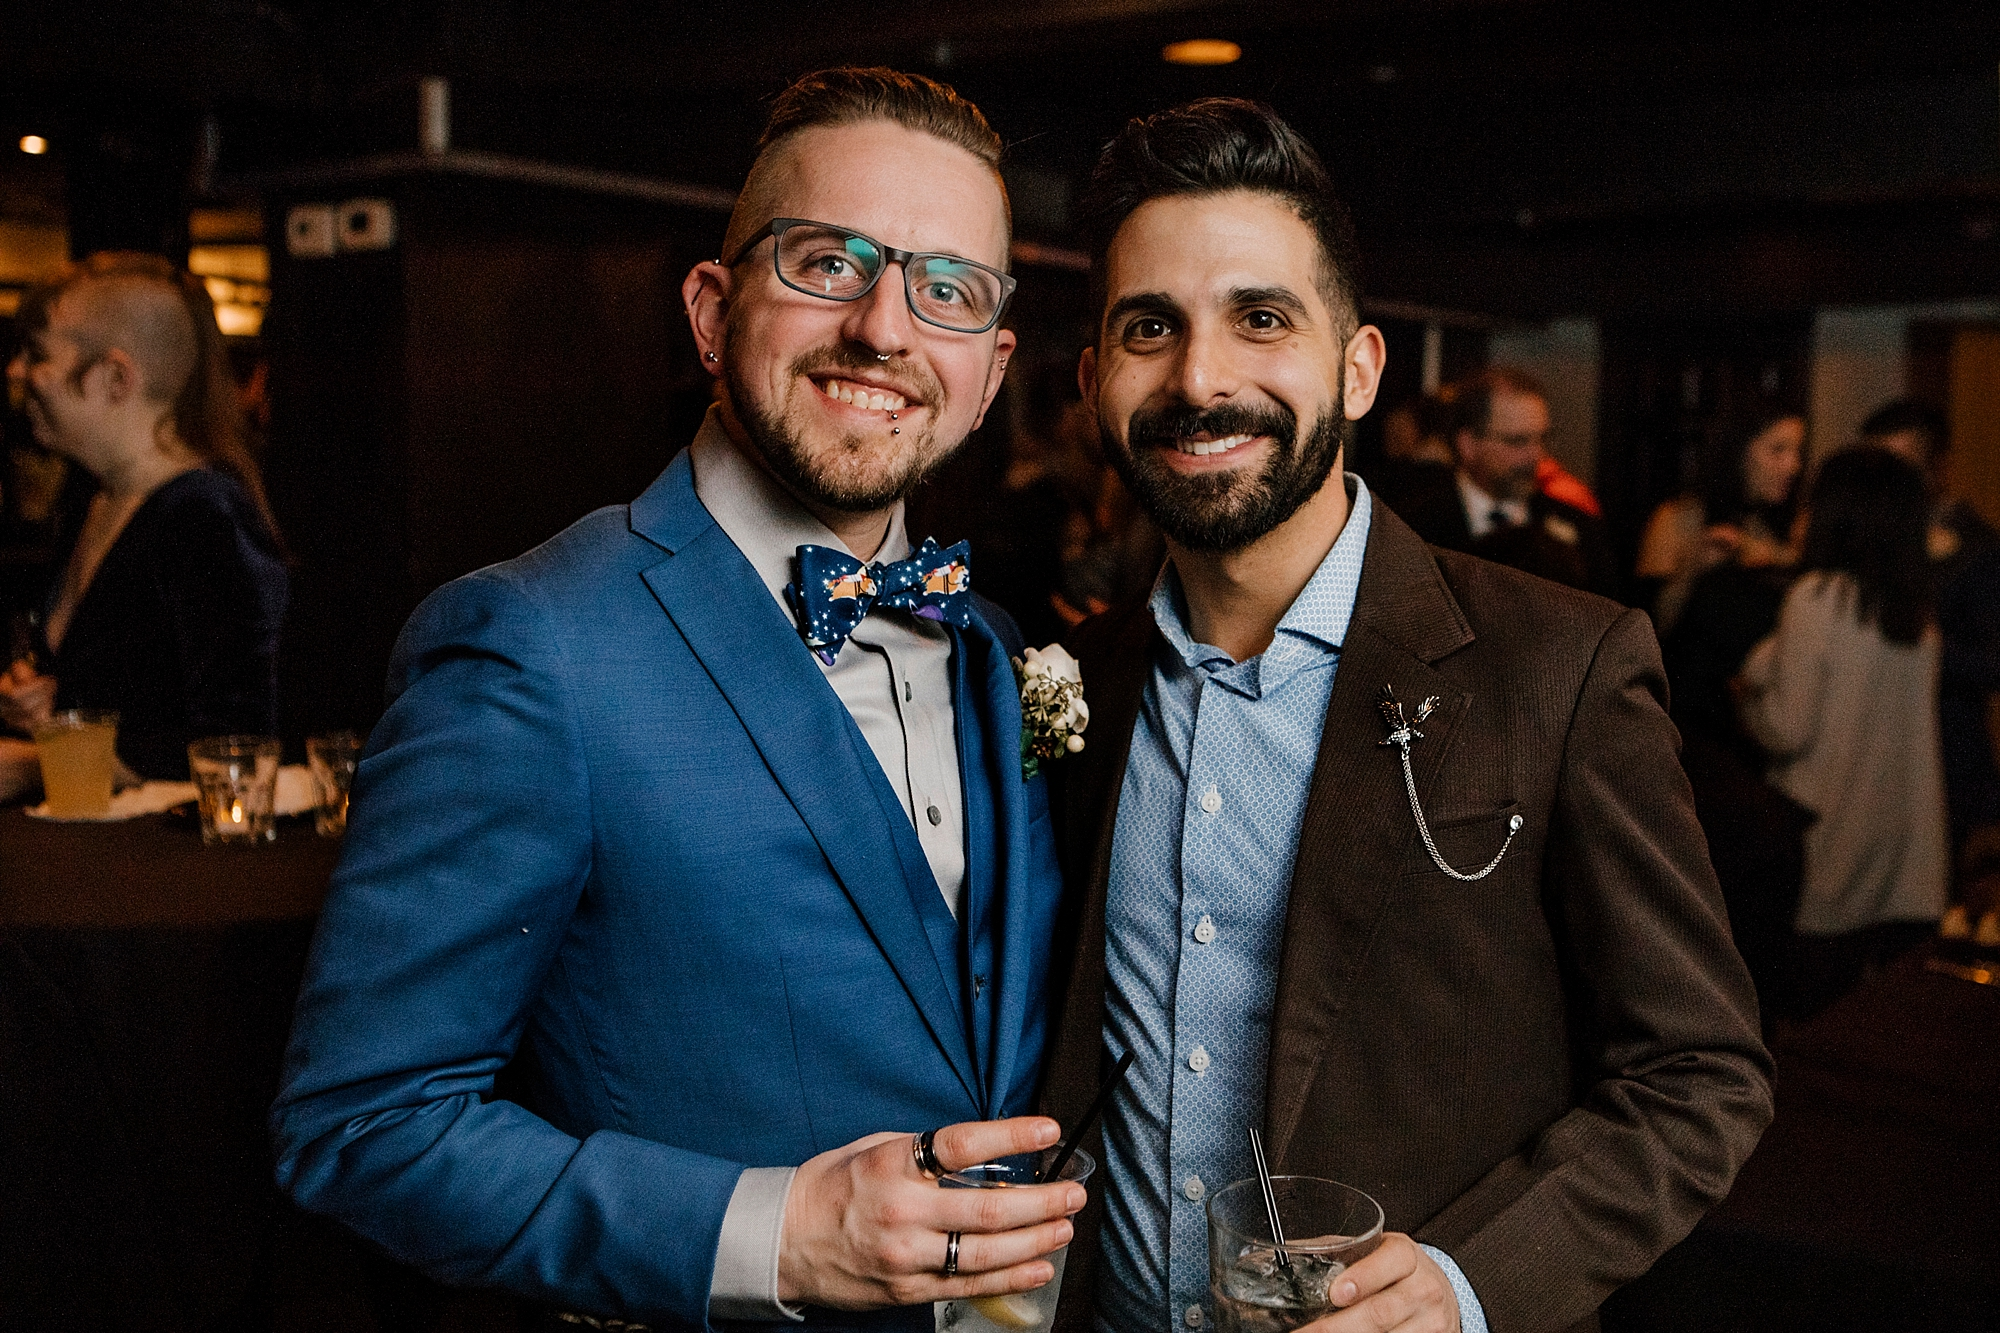 Joe_Mac_Creative_Philadelphia_Philly_LGBT_Gay_Engagement_Wedding_Photography__0156.jpg